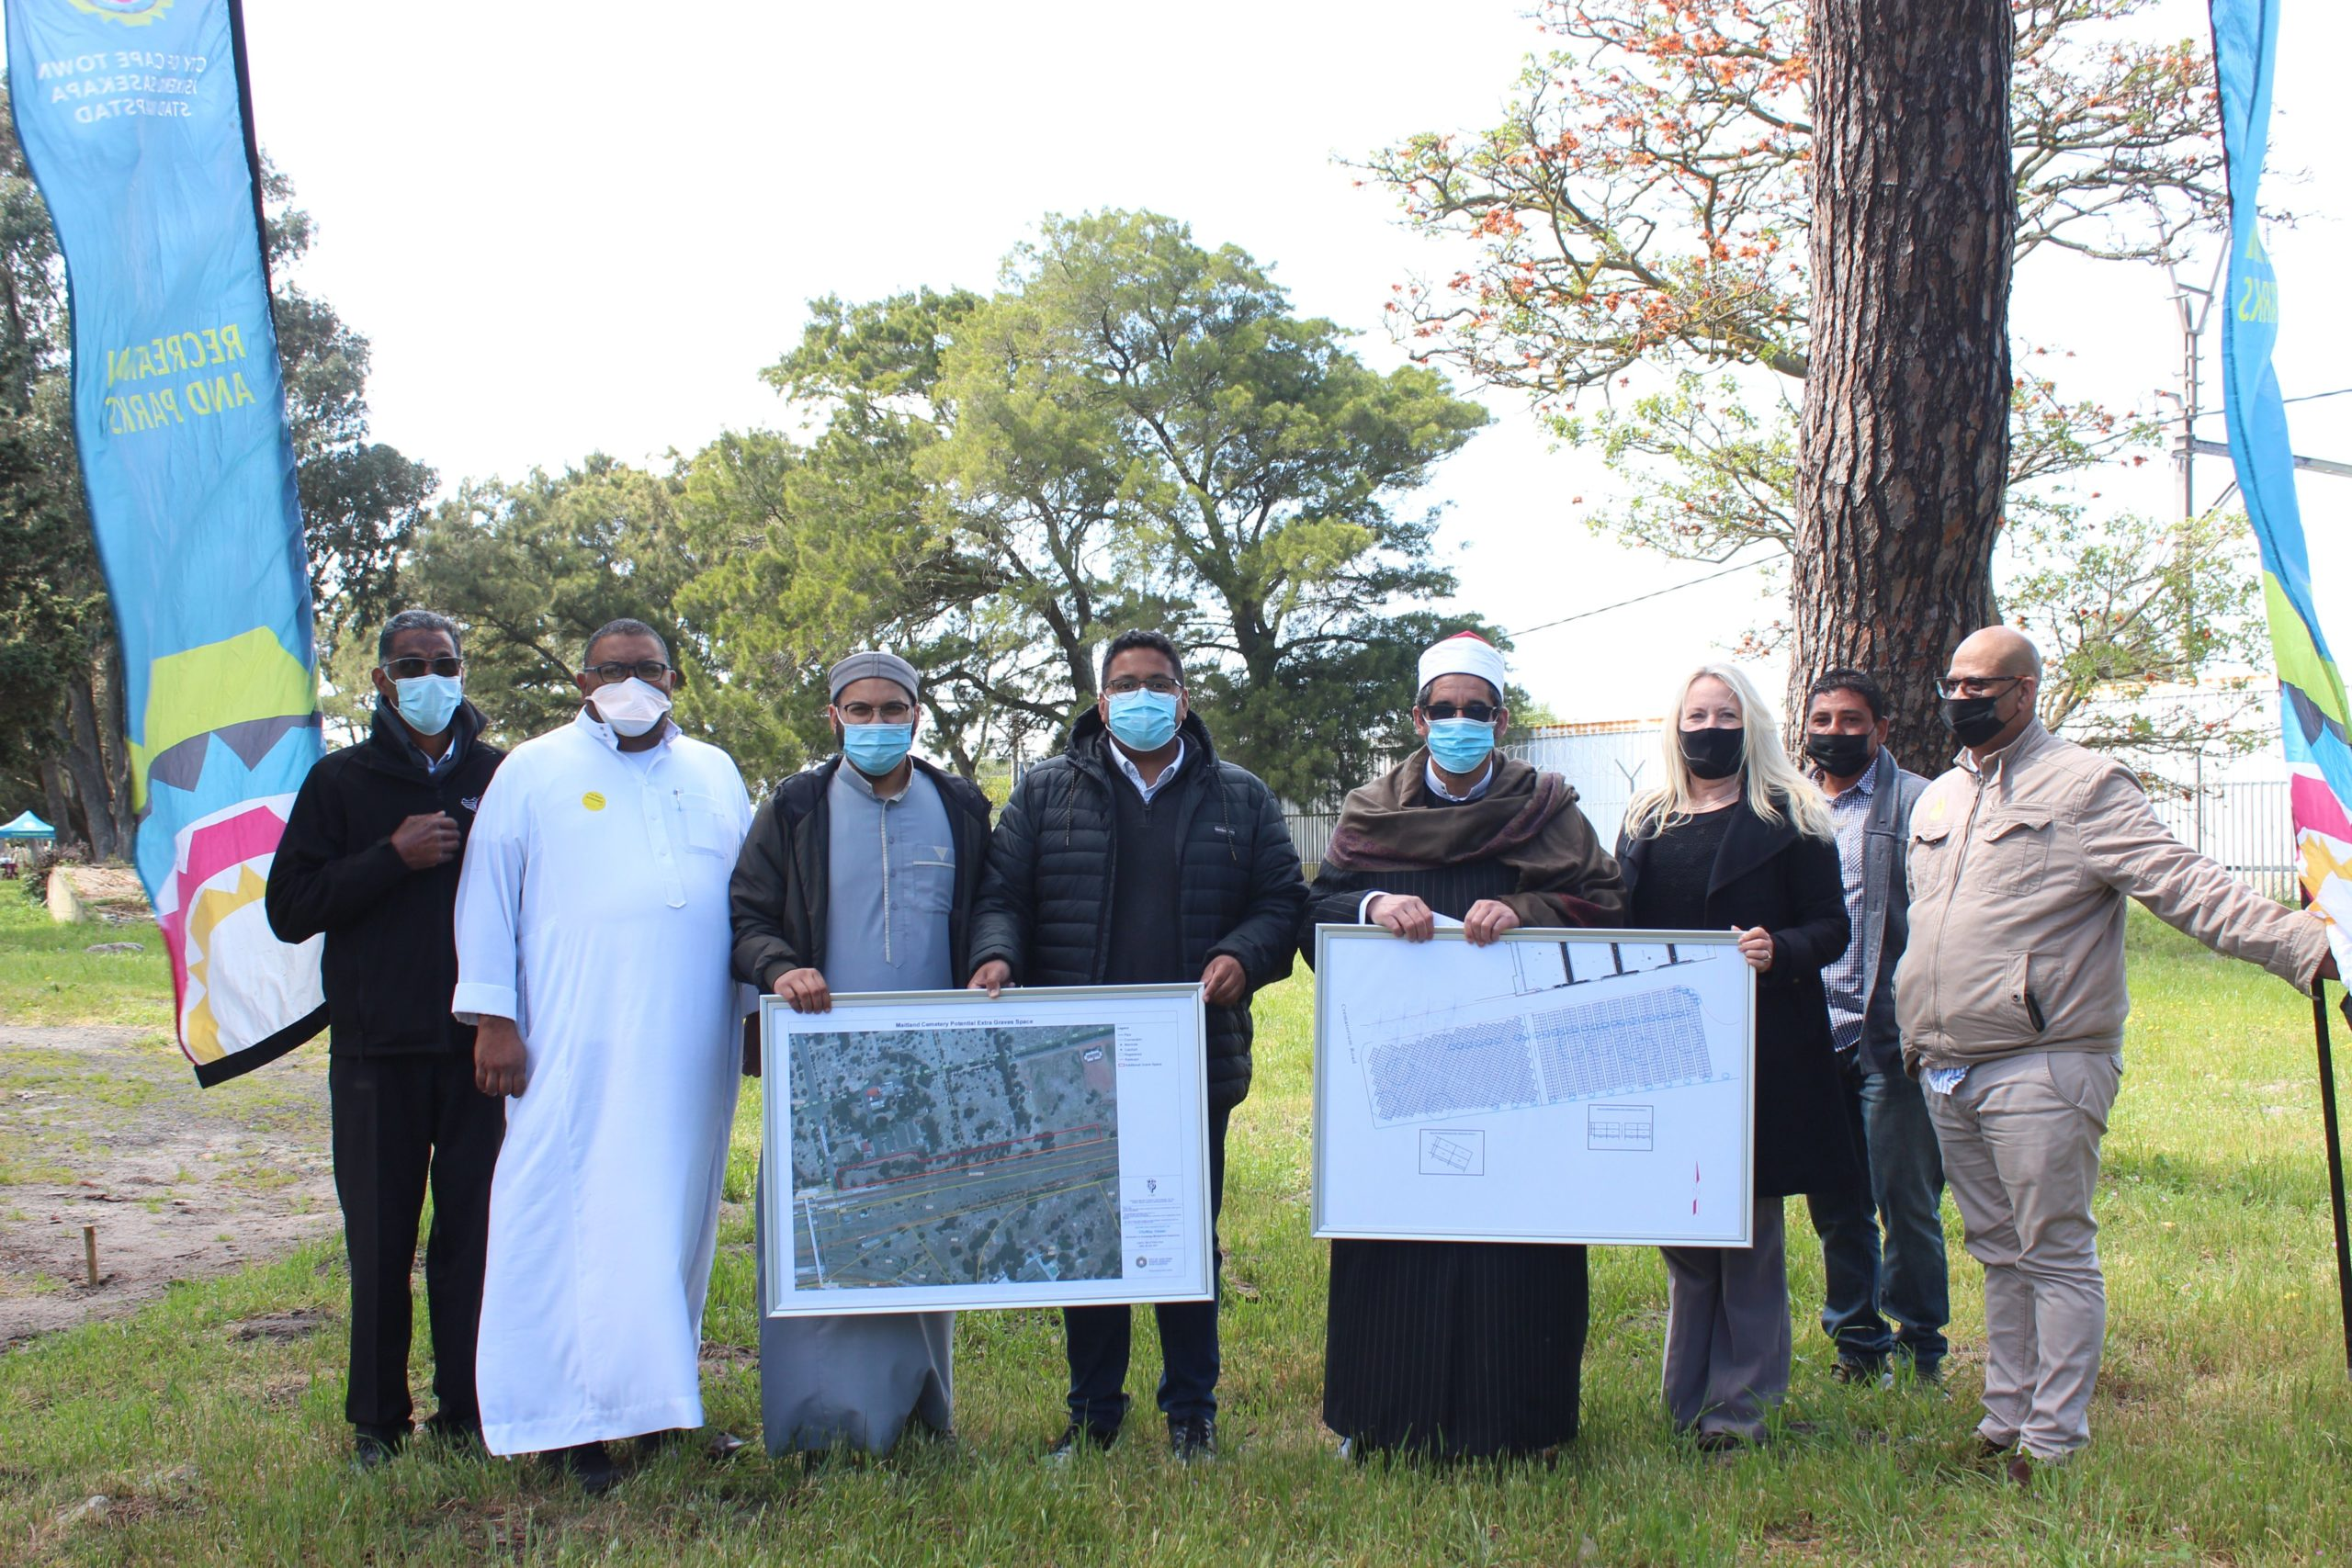 City expands Muslim burial section at Maitland Cemetery